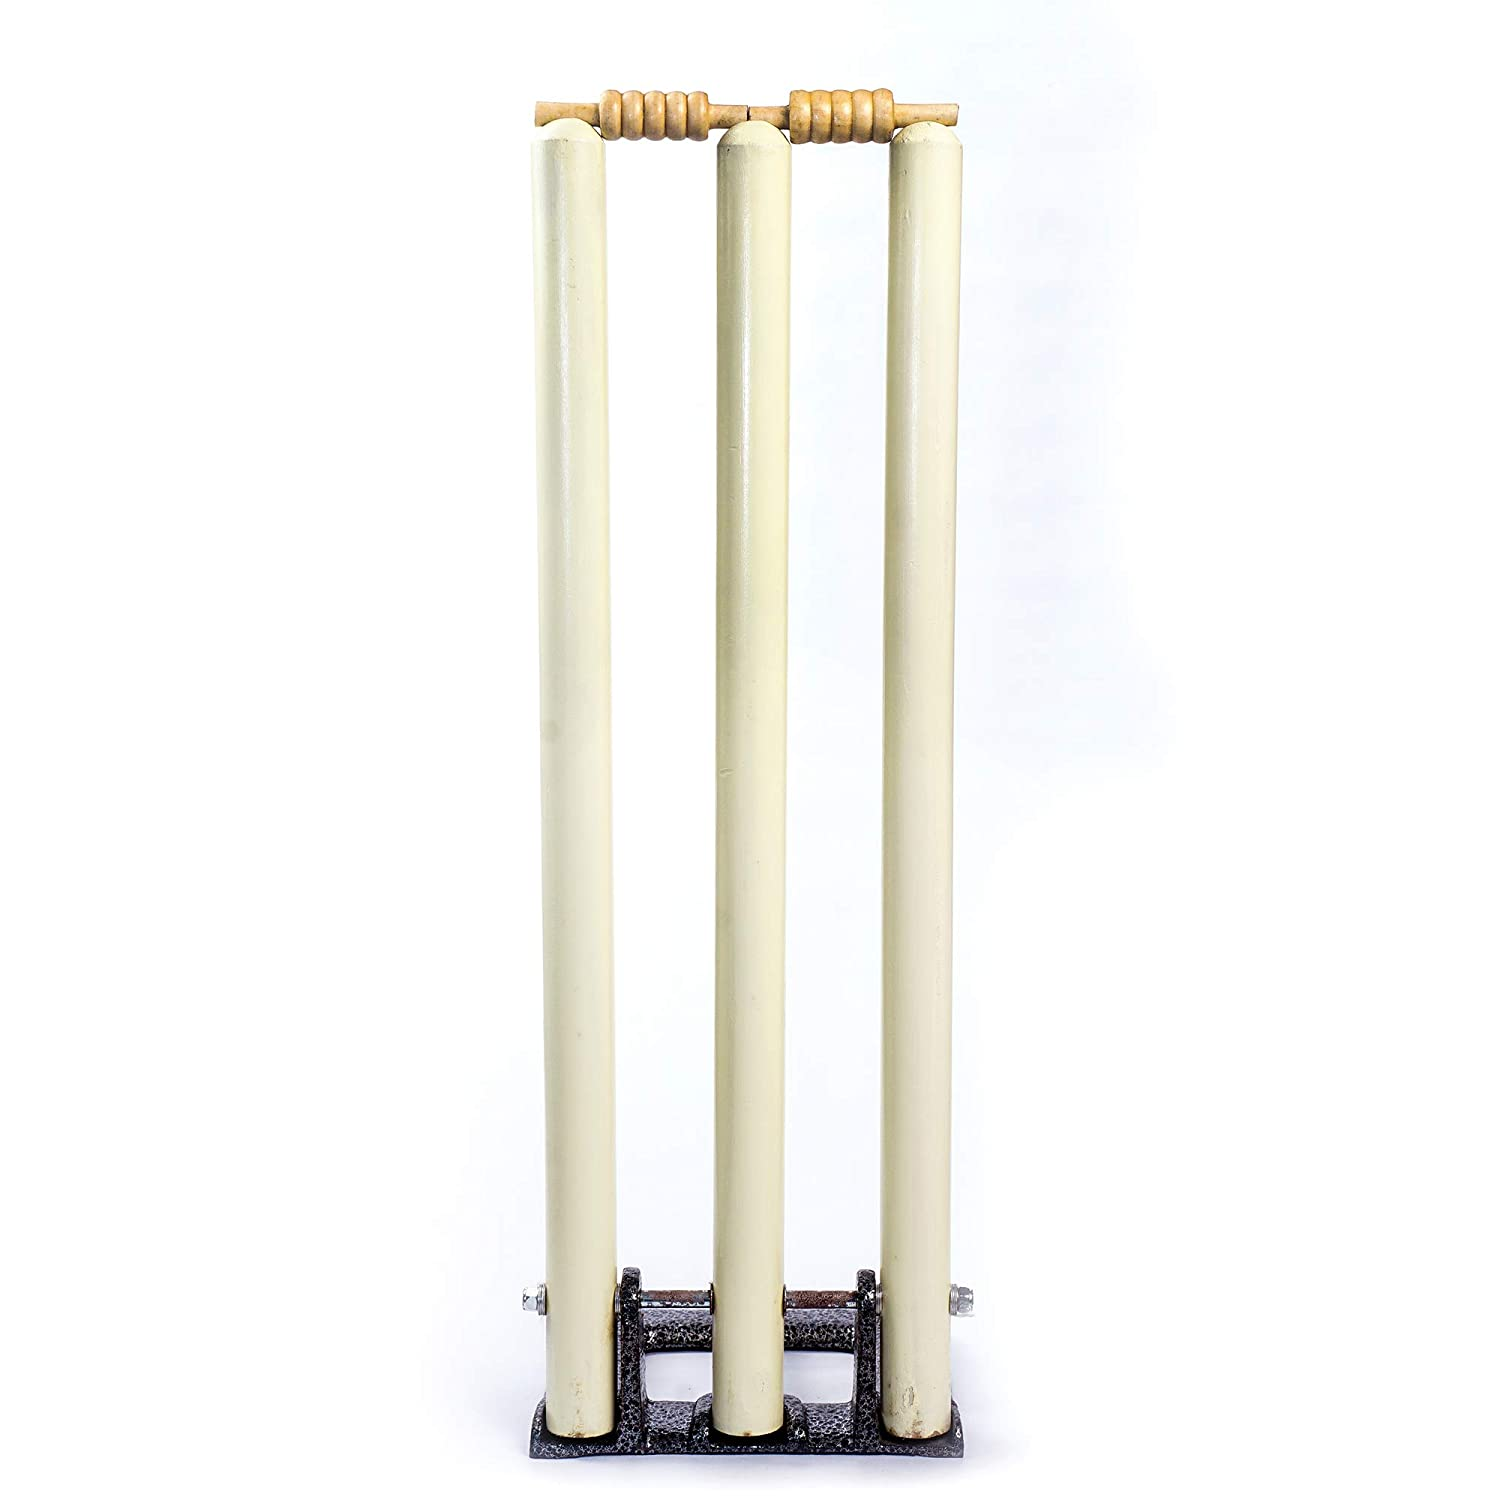 Wooden International Standard Size Complete Stumps Set with Heavy Duty Spring Stand Base (Top Quality)